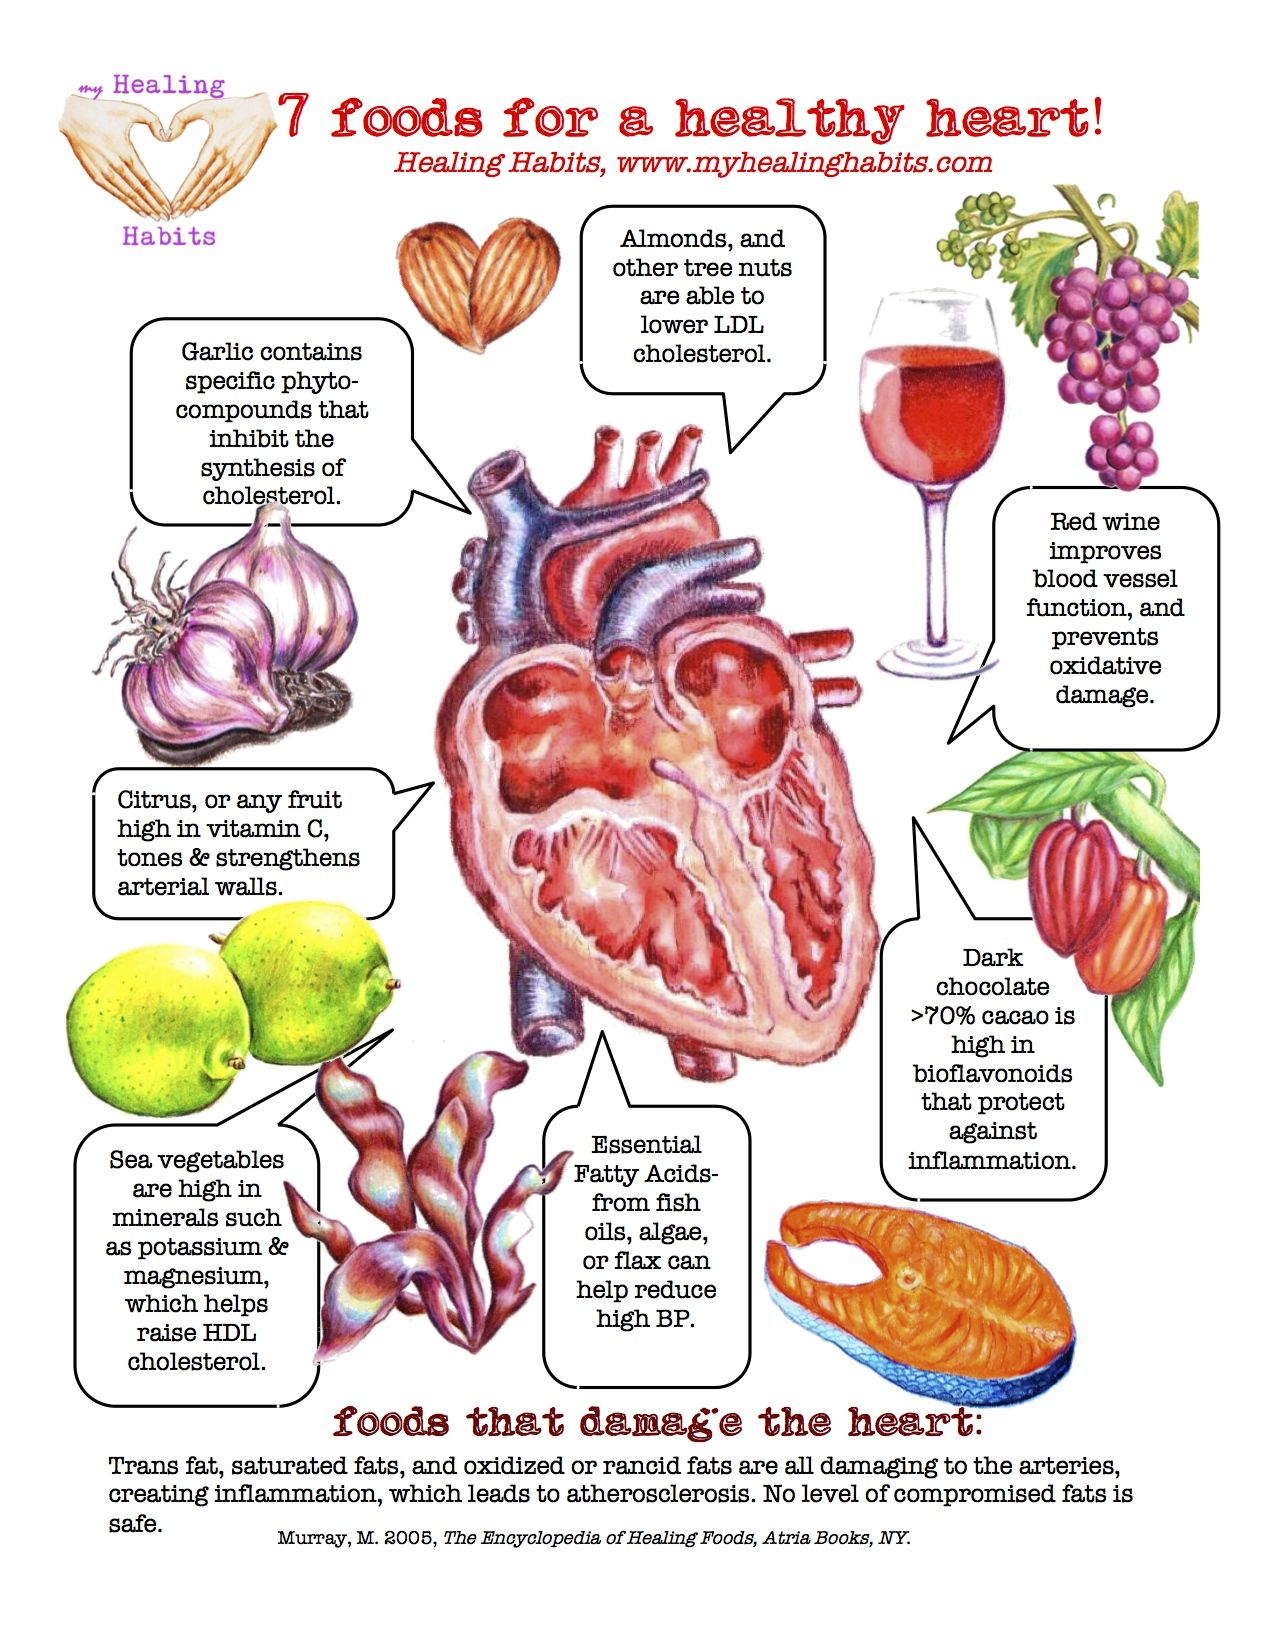 The most useful food for the heart 34